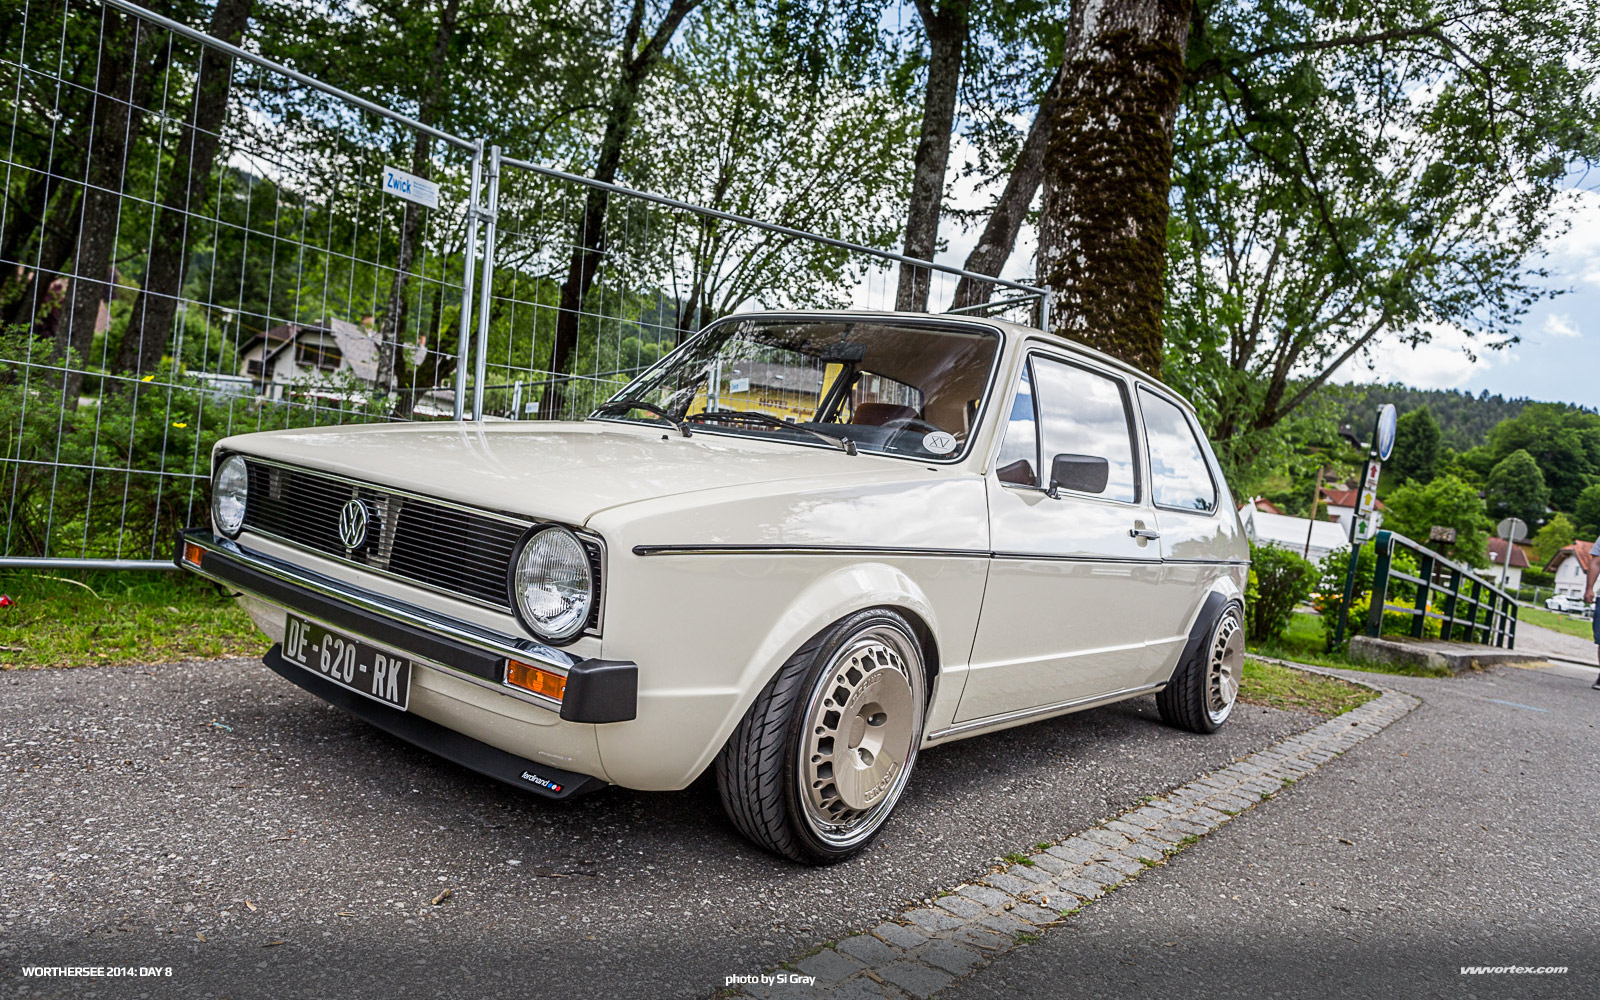 2014-Worthersee-Day-8-Si-Gray-1111